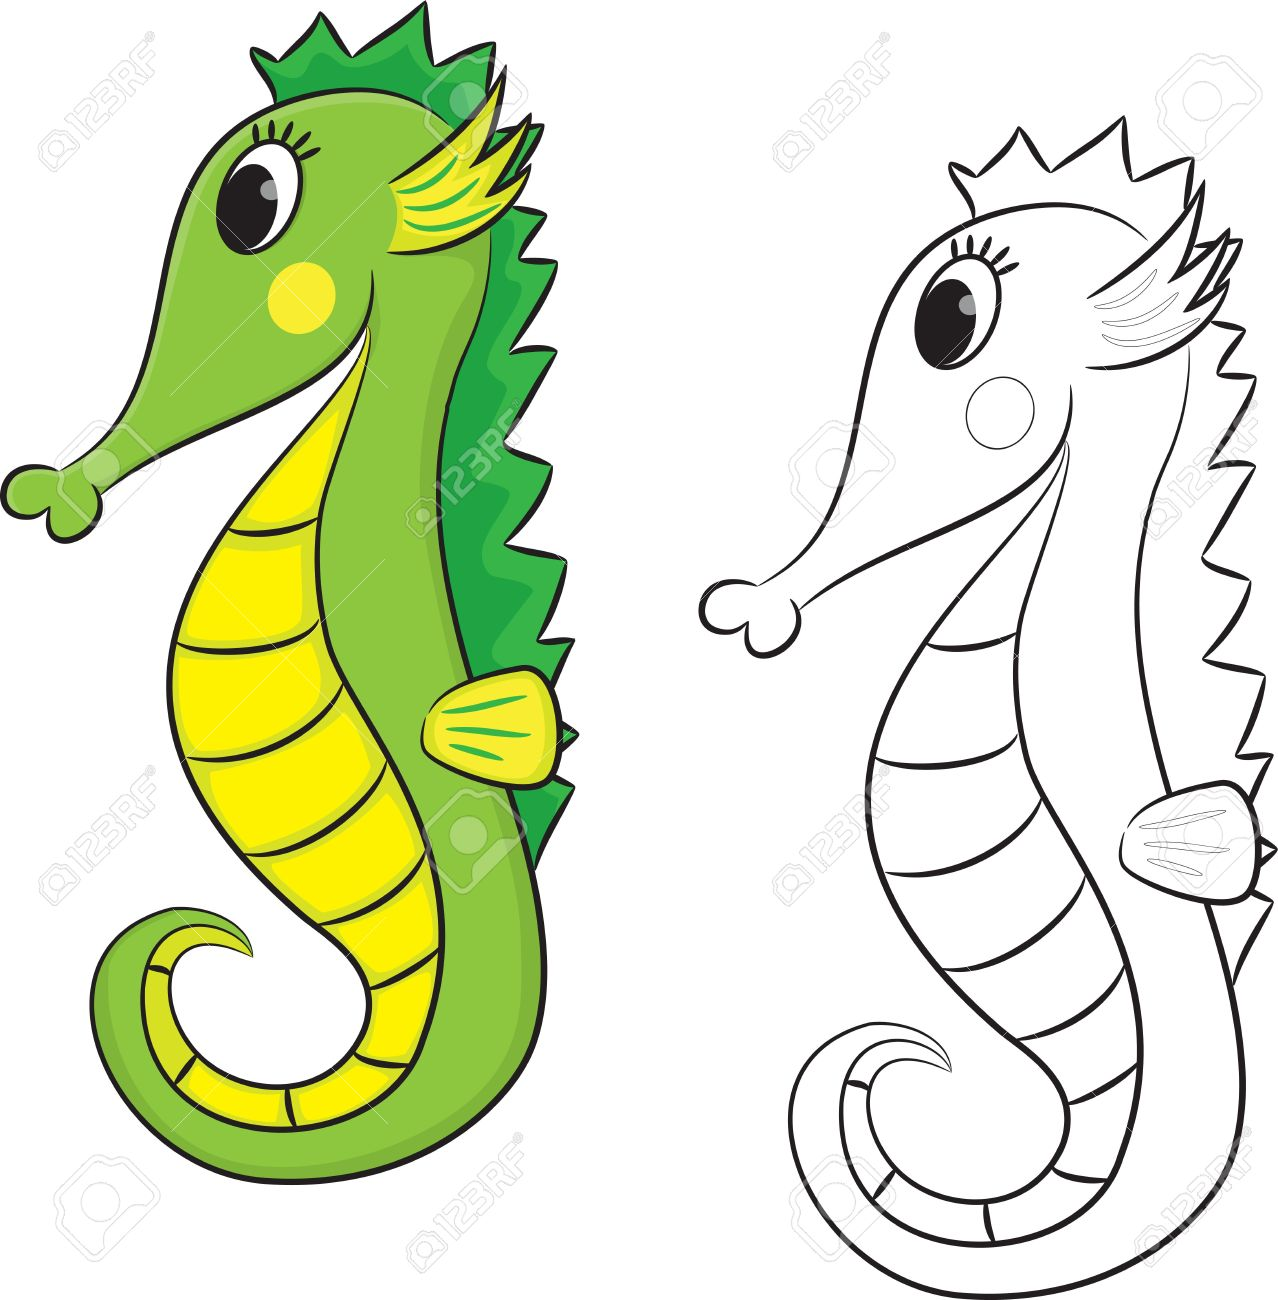 Hippocampe De Bande Dessinée Coloriage Vector Illustration Clip Art